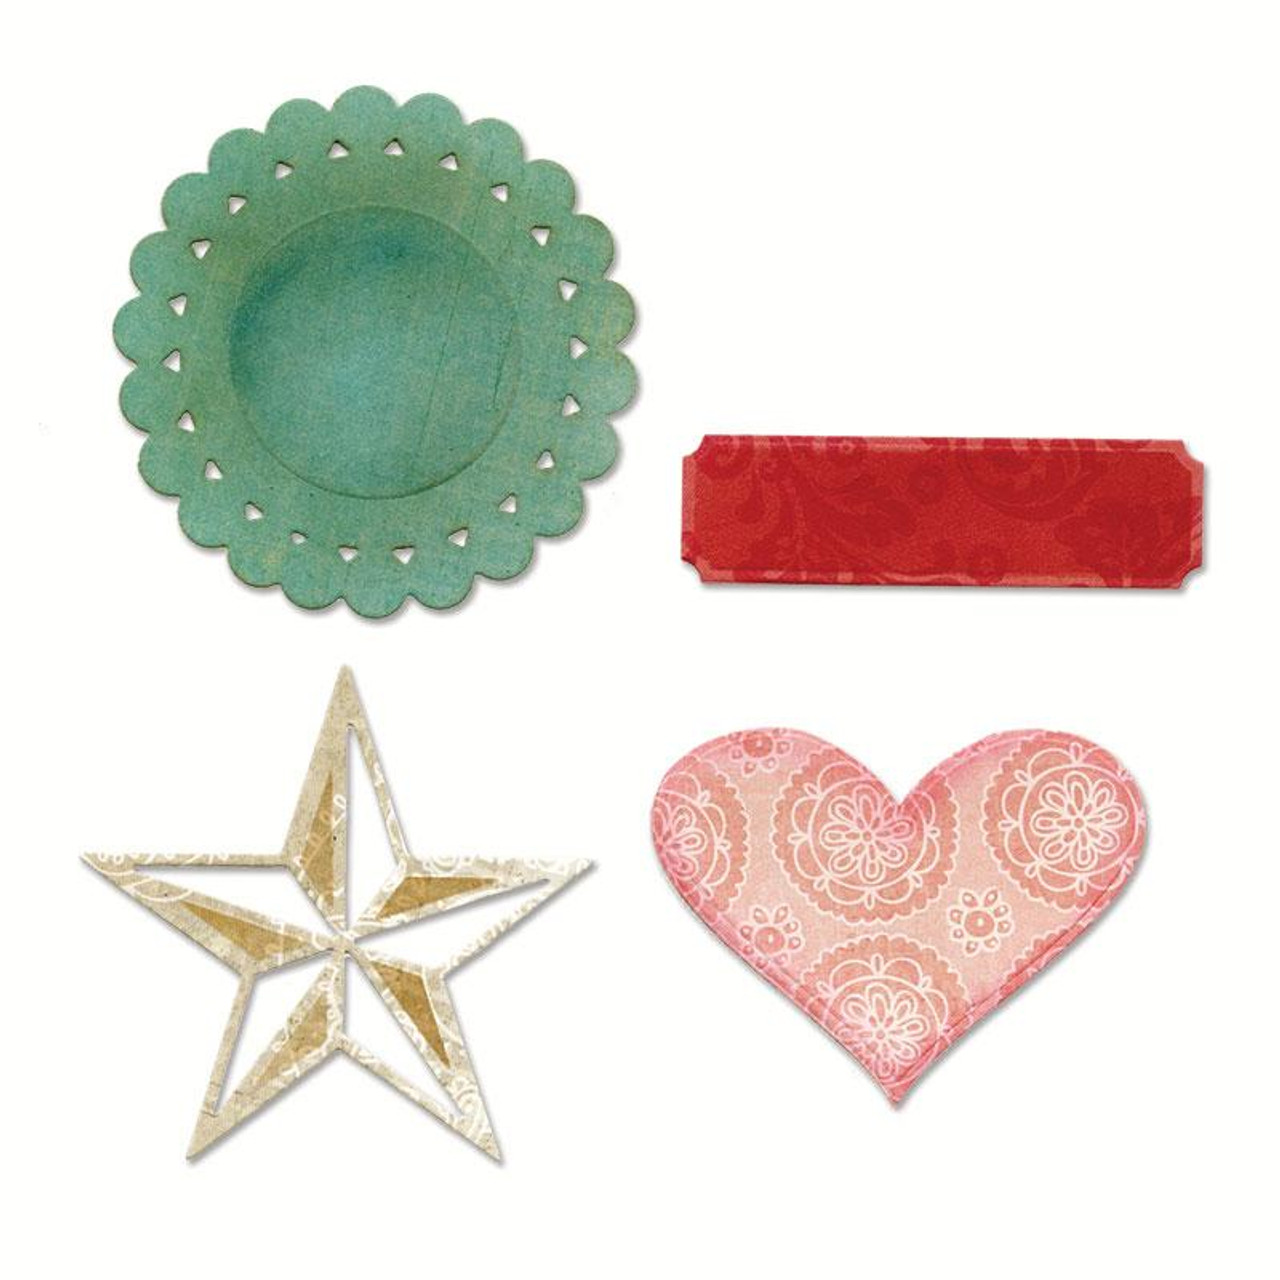 Sizzix Thinlits Die Set 4PK - Everyday Eclectic by Echo Park